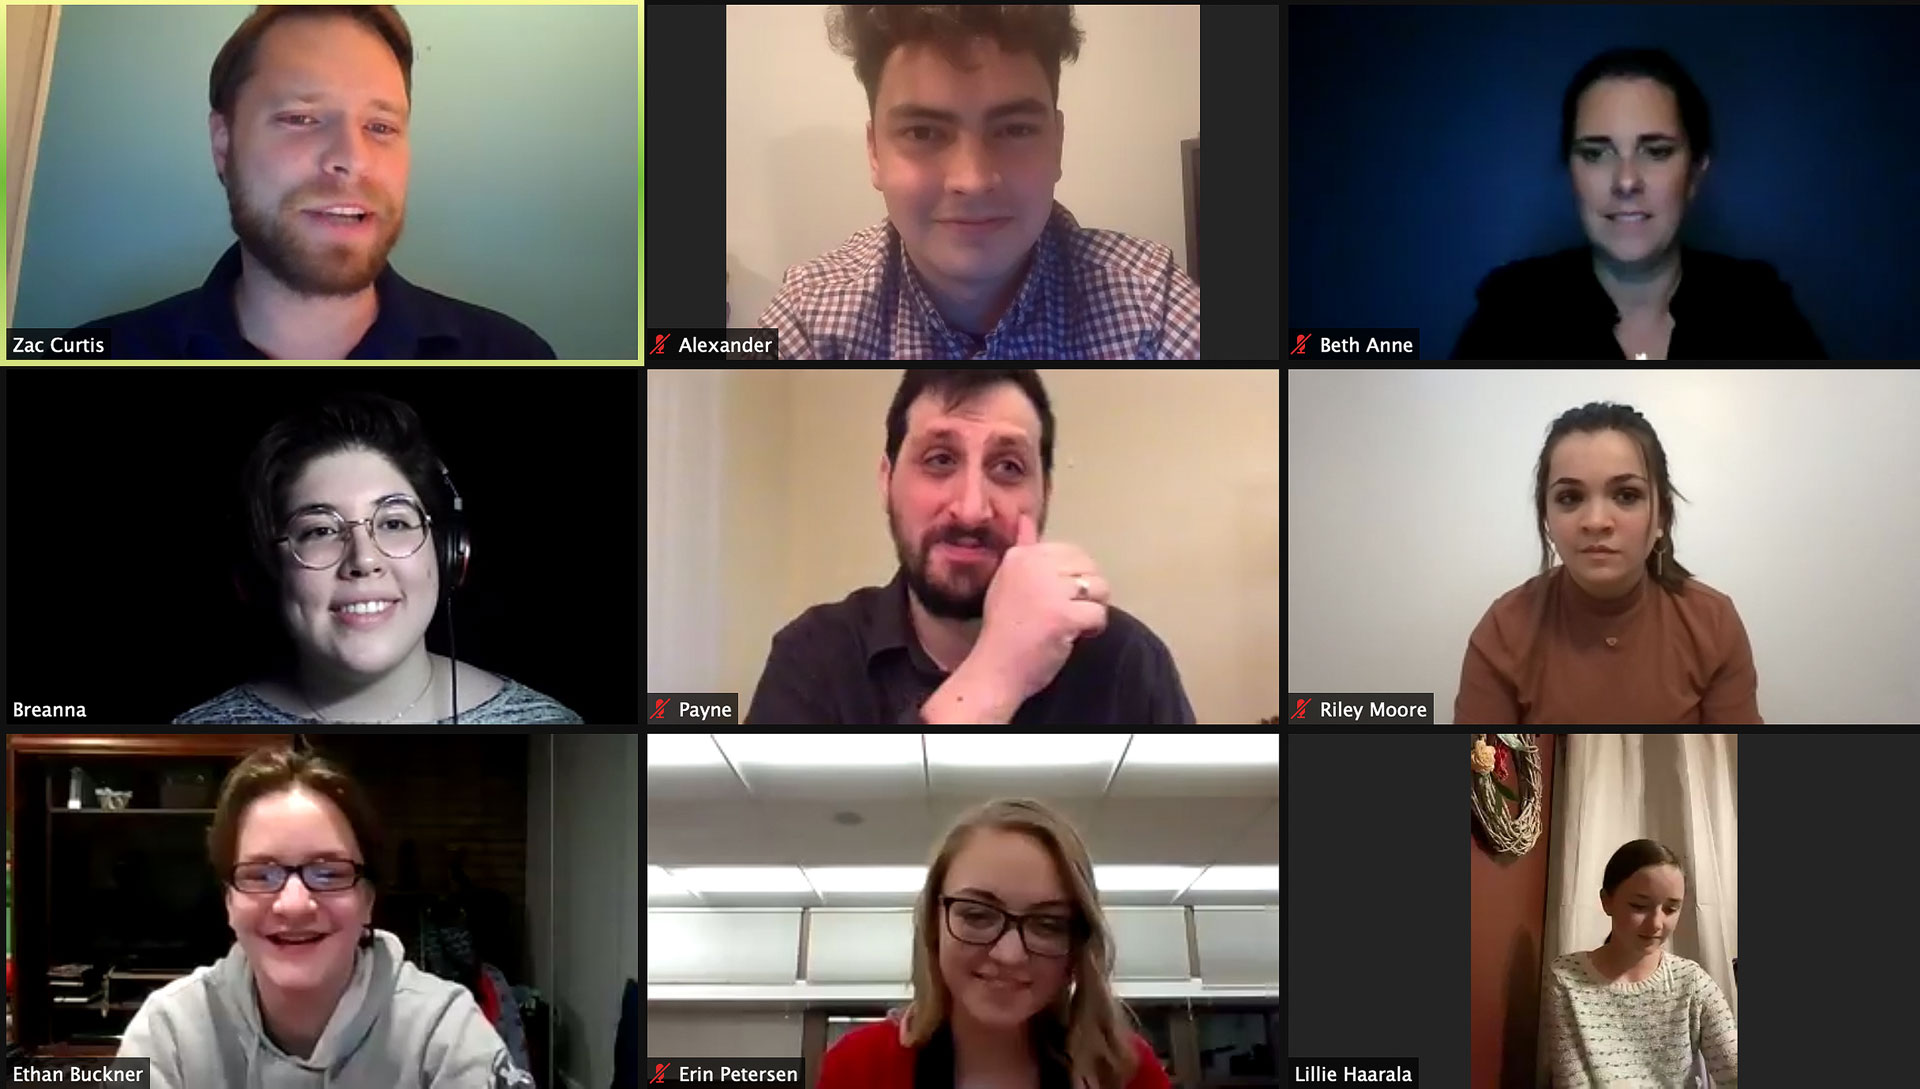 Virtual meeting between playwrights and cast members